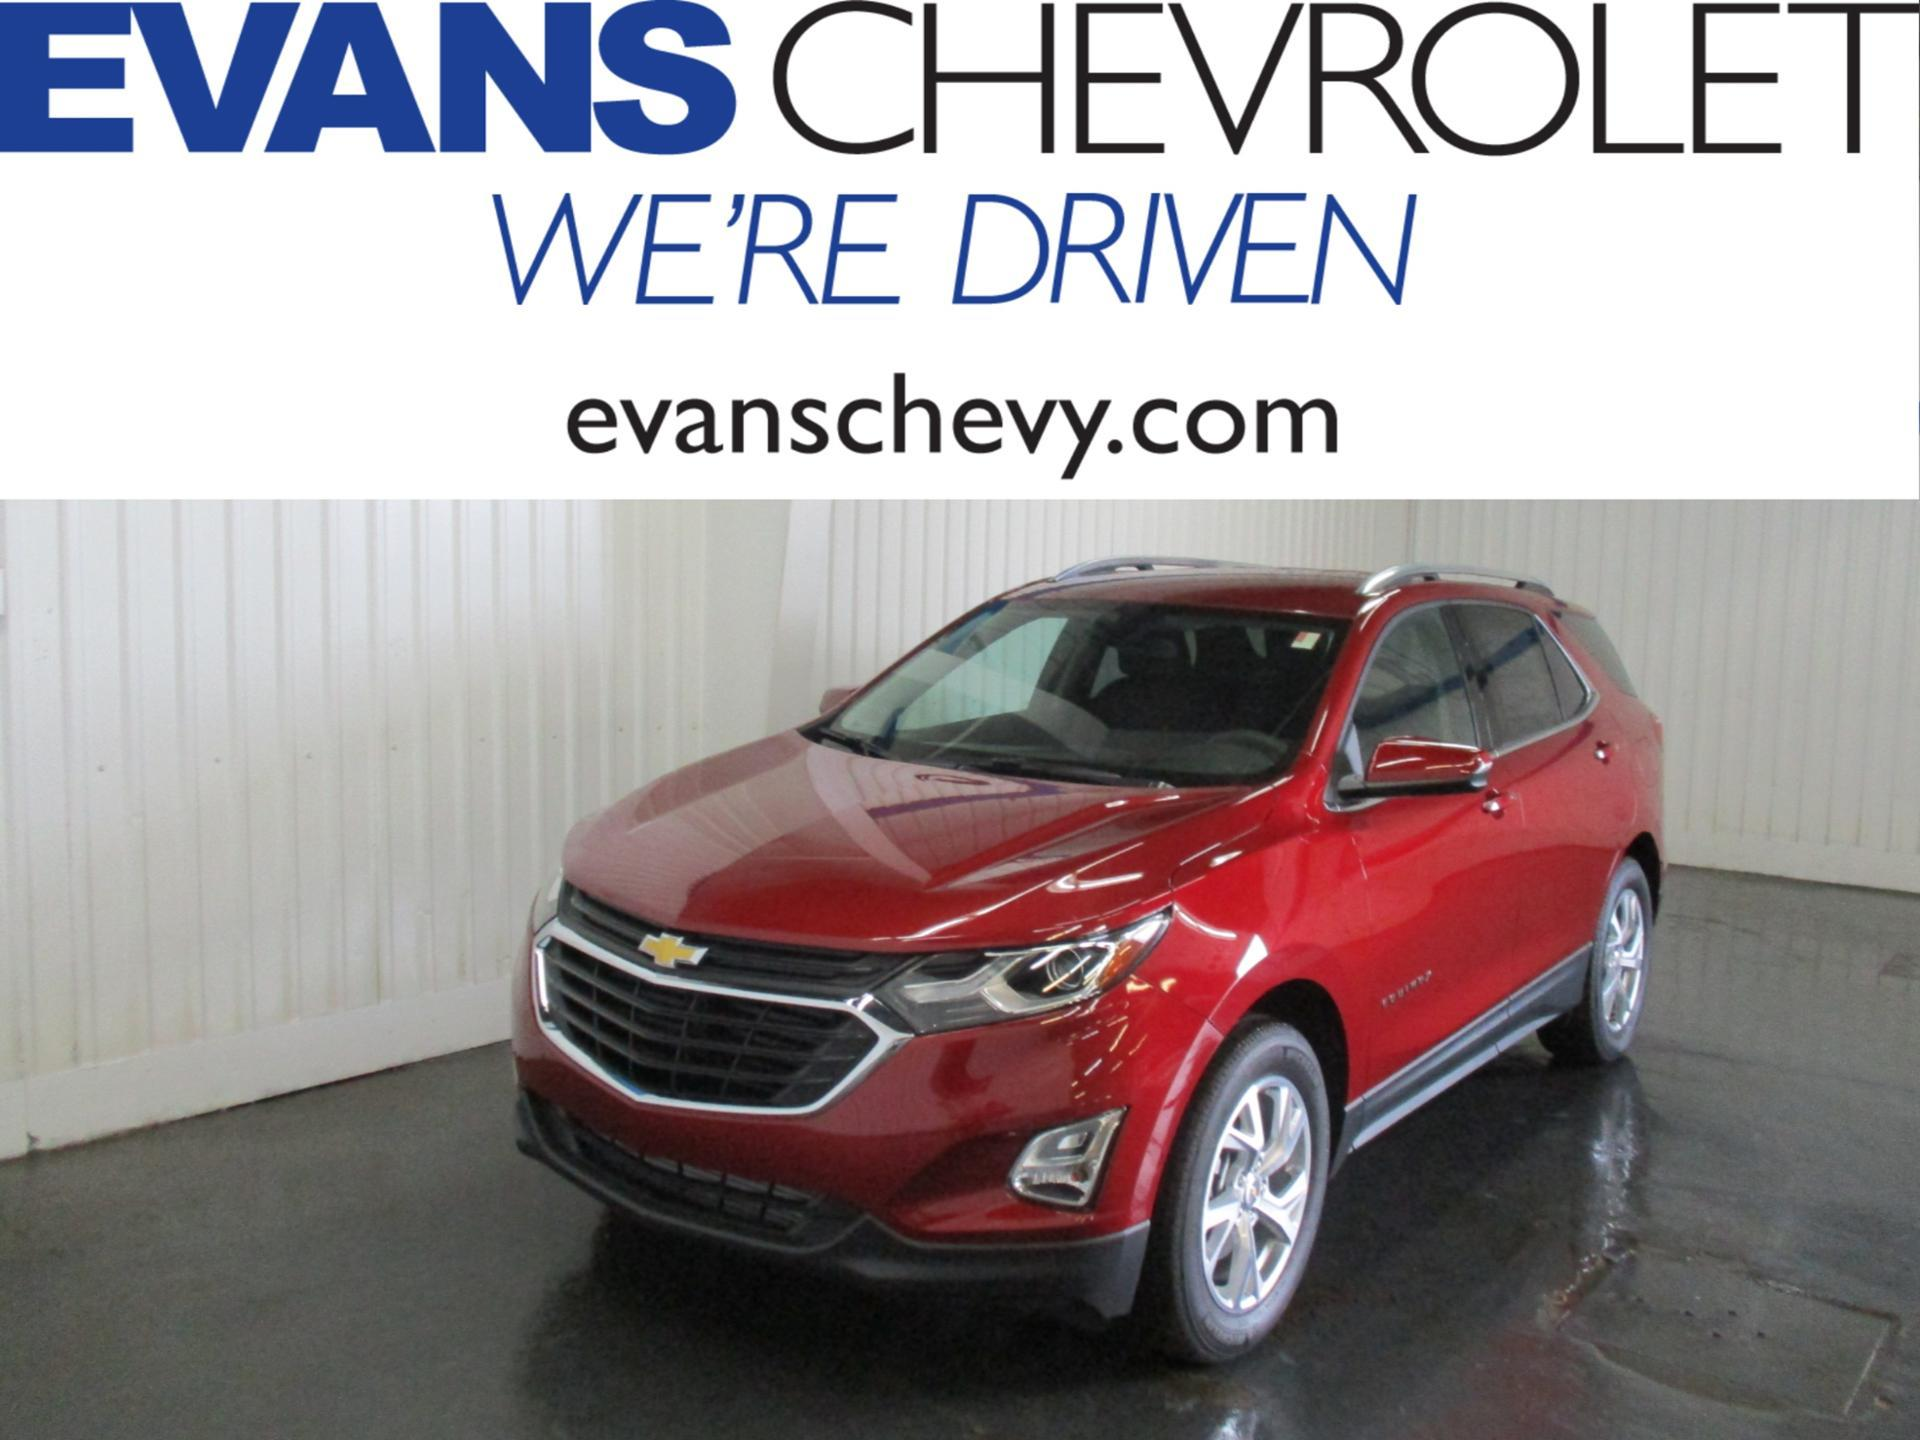 Used Cars Syracuse New Evans Chevrolet